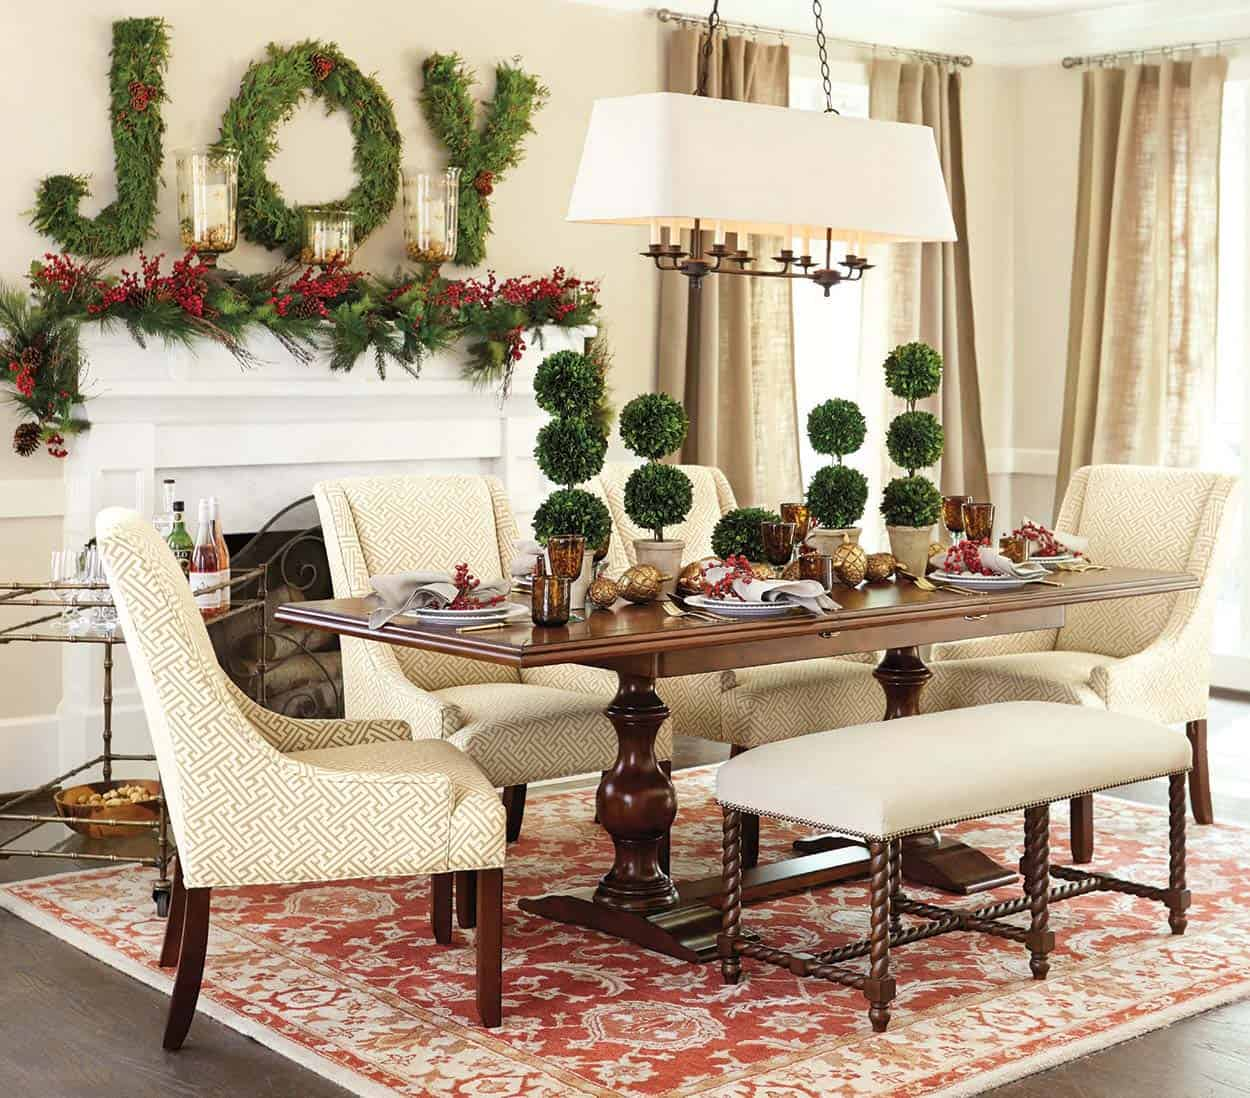 40 fabulous rustic country christmas decorating ideas for Northwoods decor